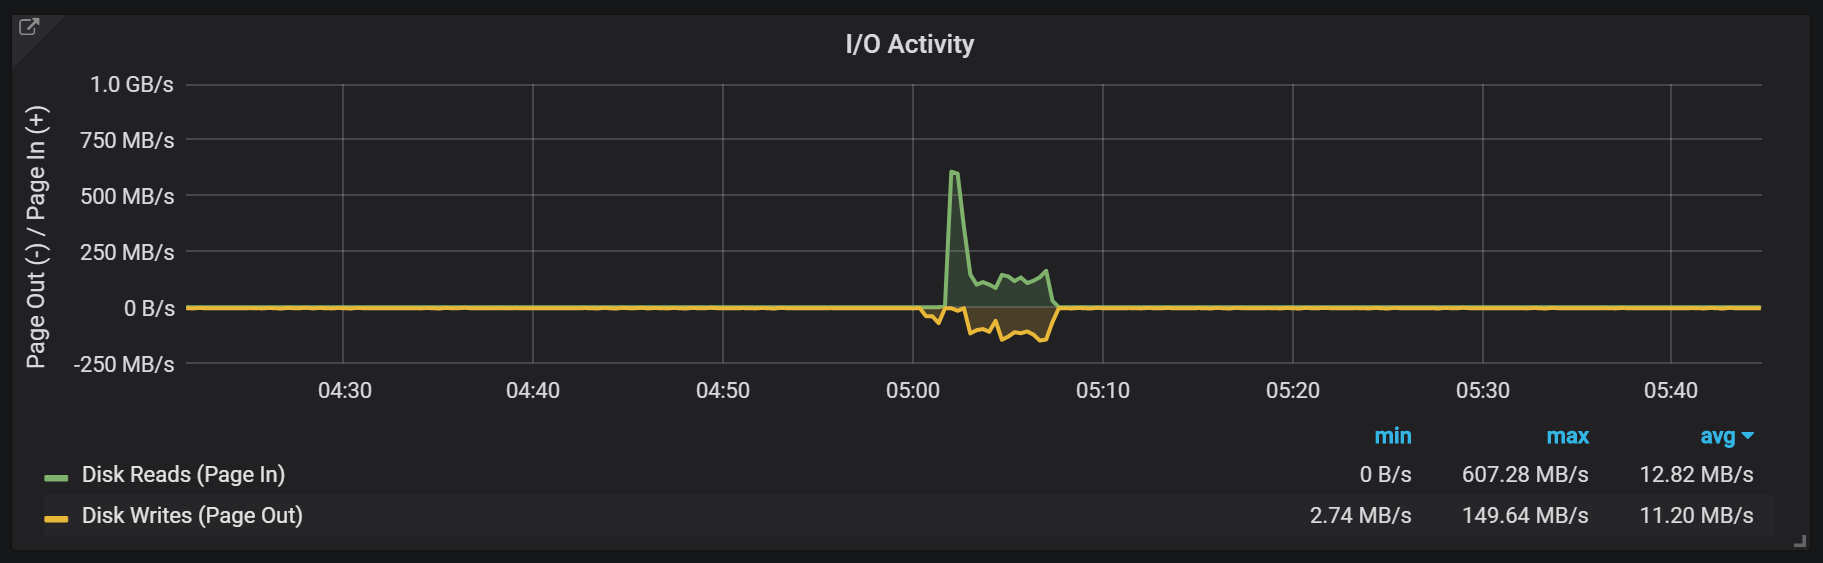 spike in io activity for compactions